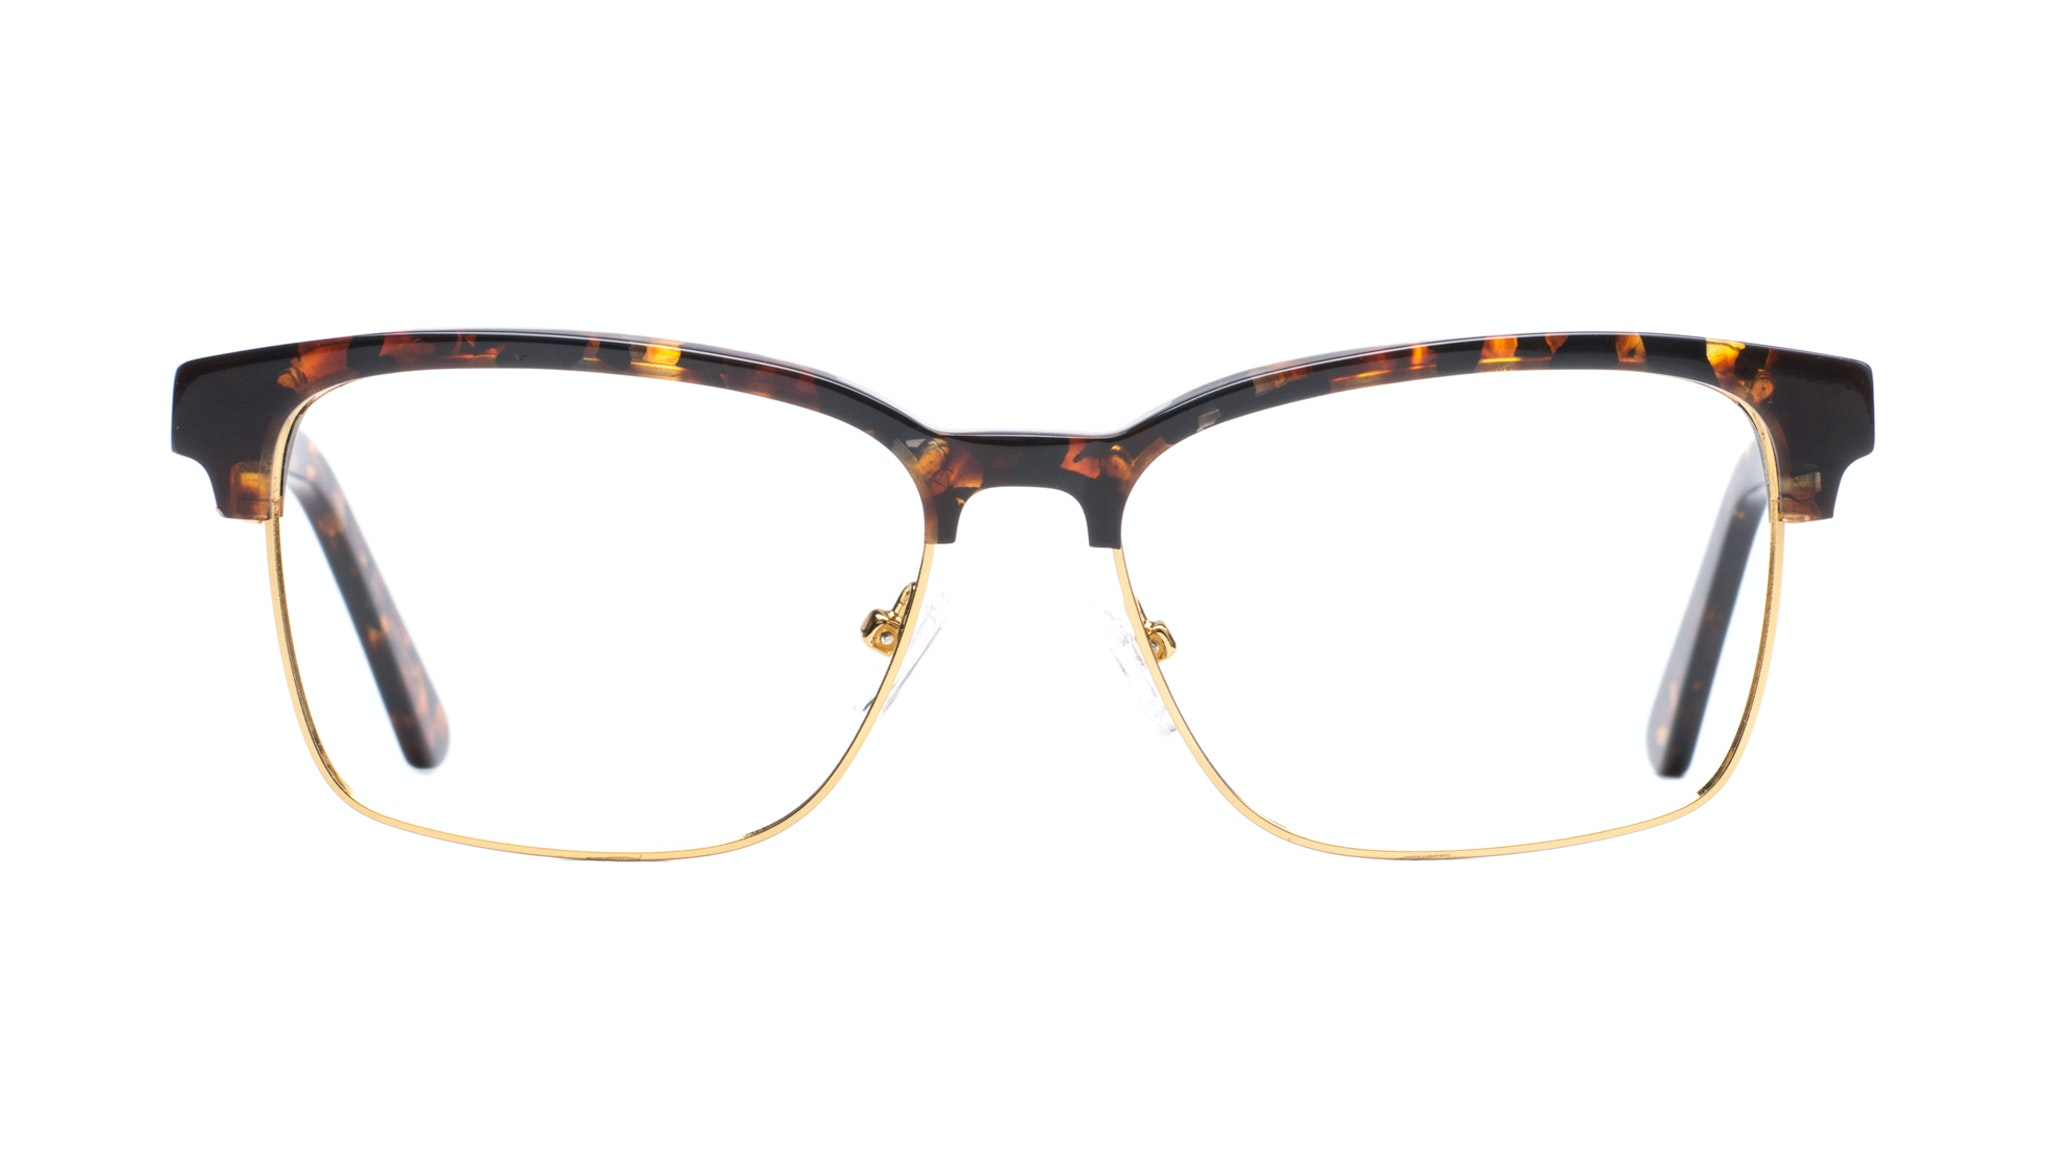 Affordable Fashion Glasses Rectangle Square Eyeglasses Men Gallery Mahogany Front